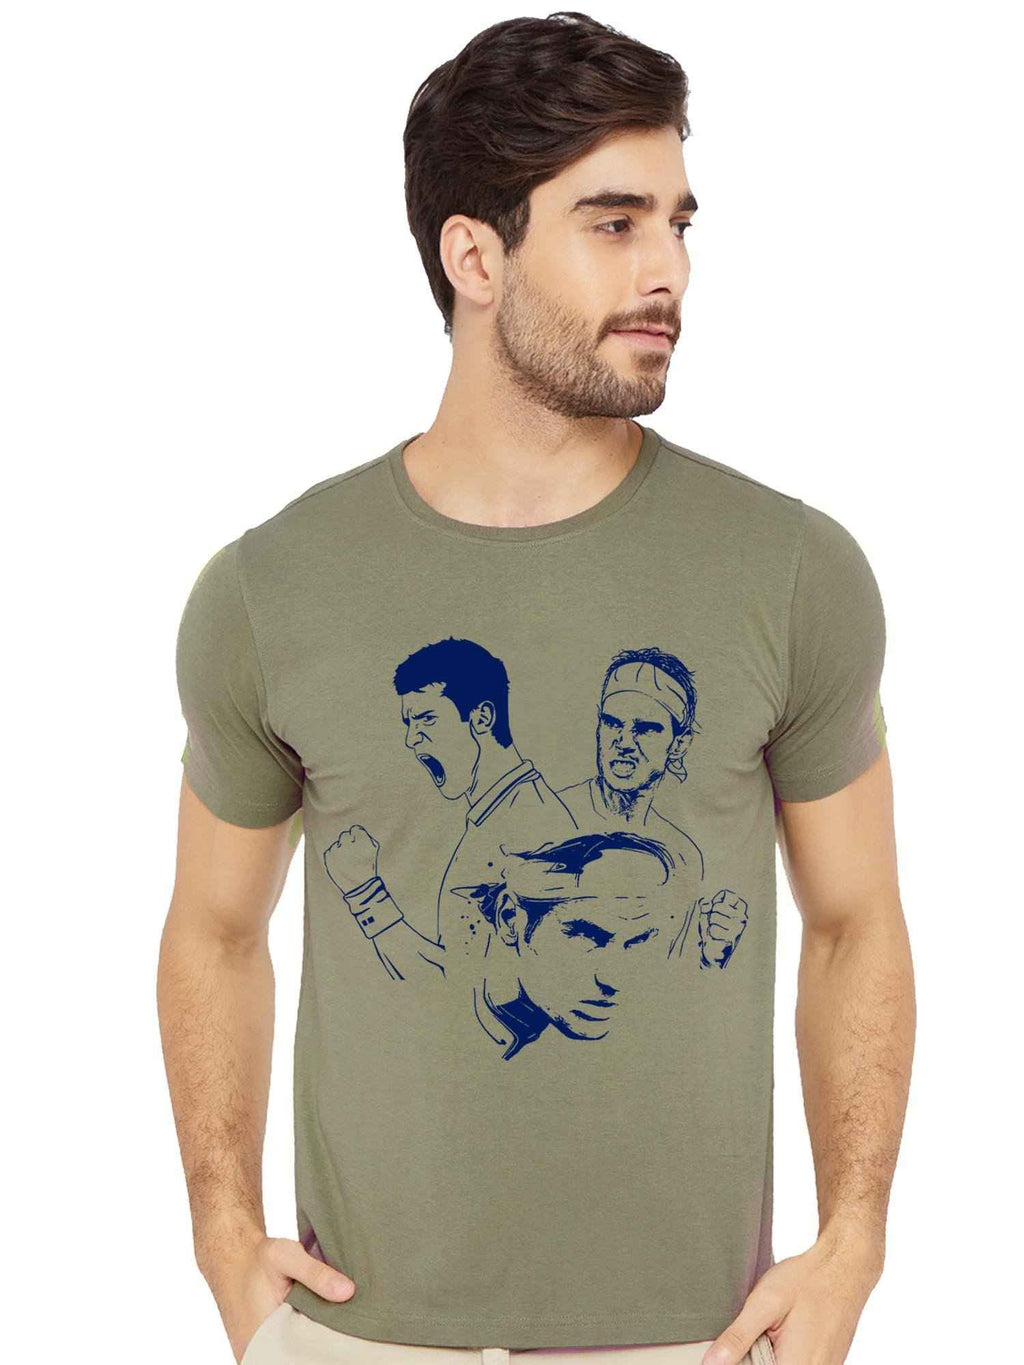 Tennis Legends Half Tshirt - bluehaat